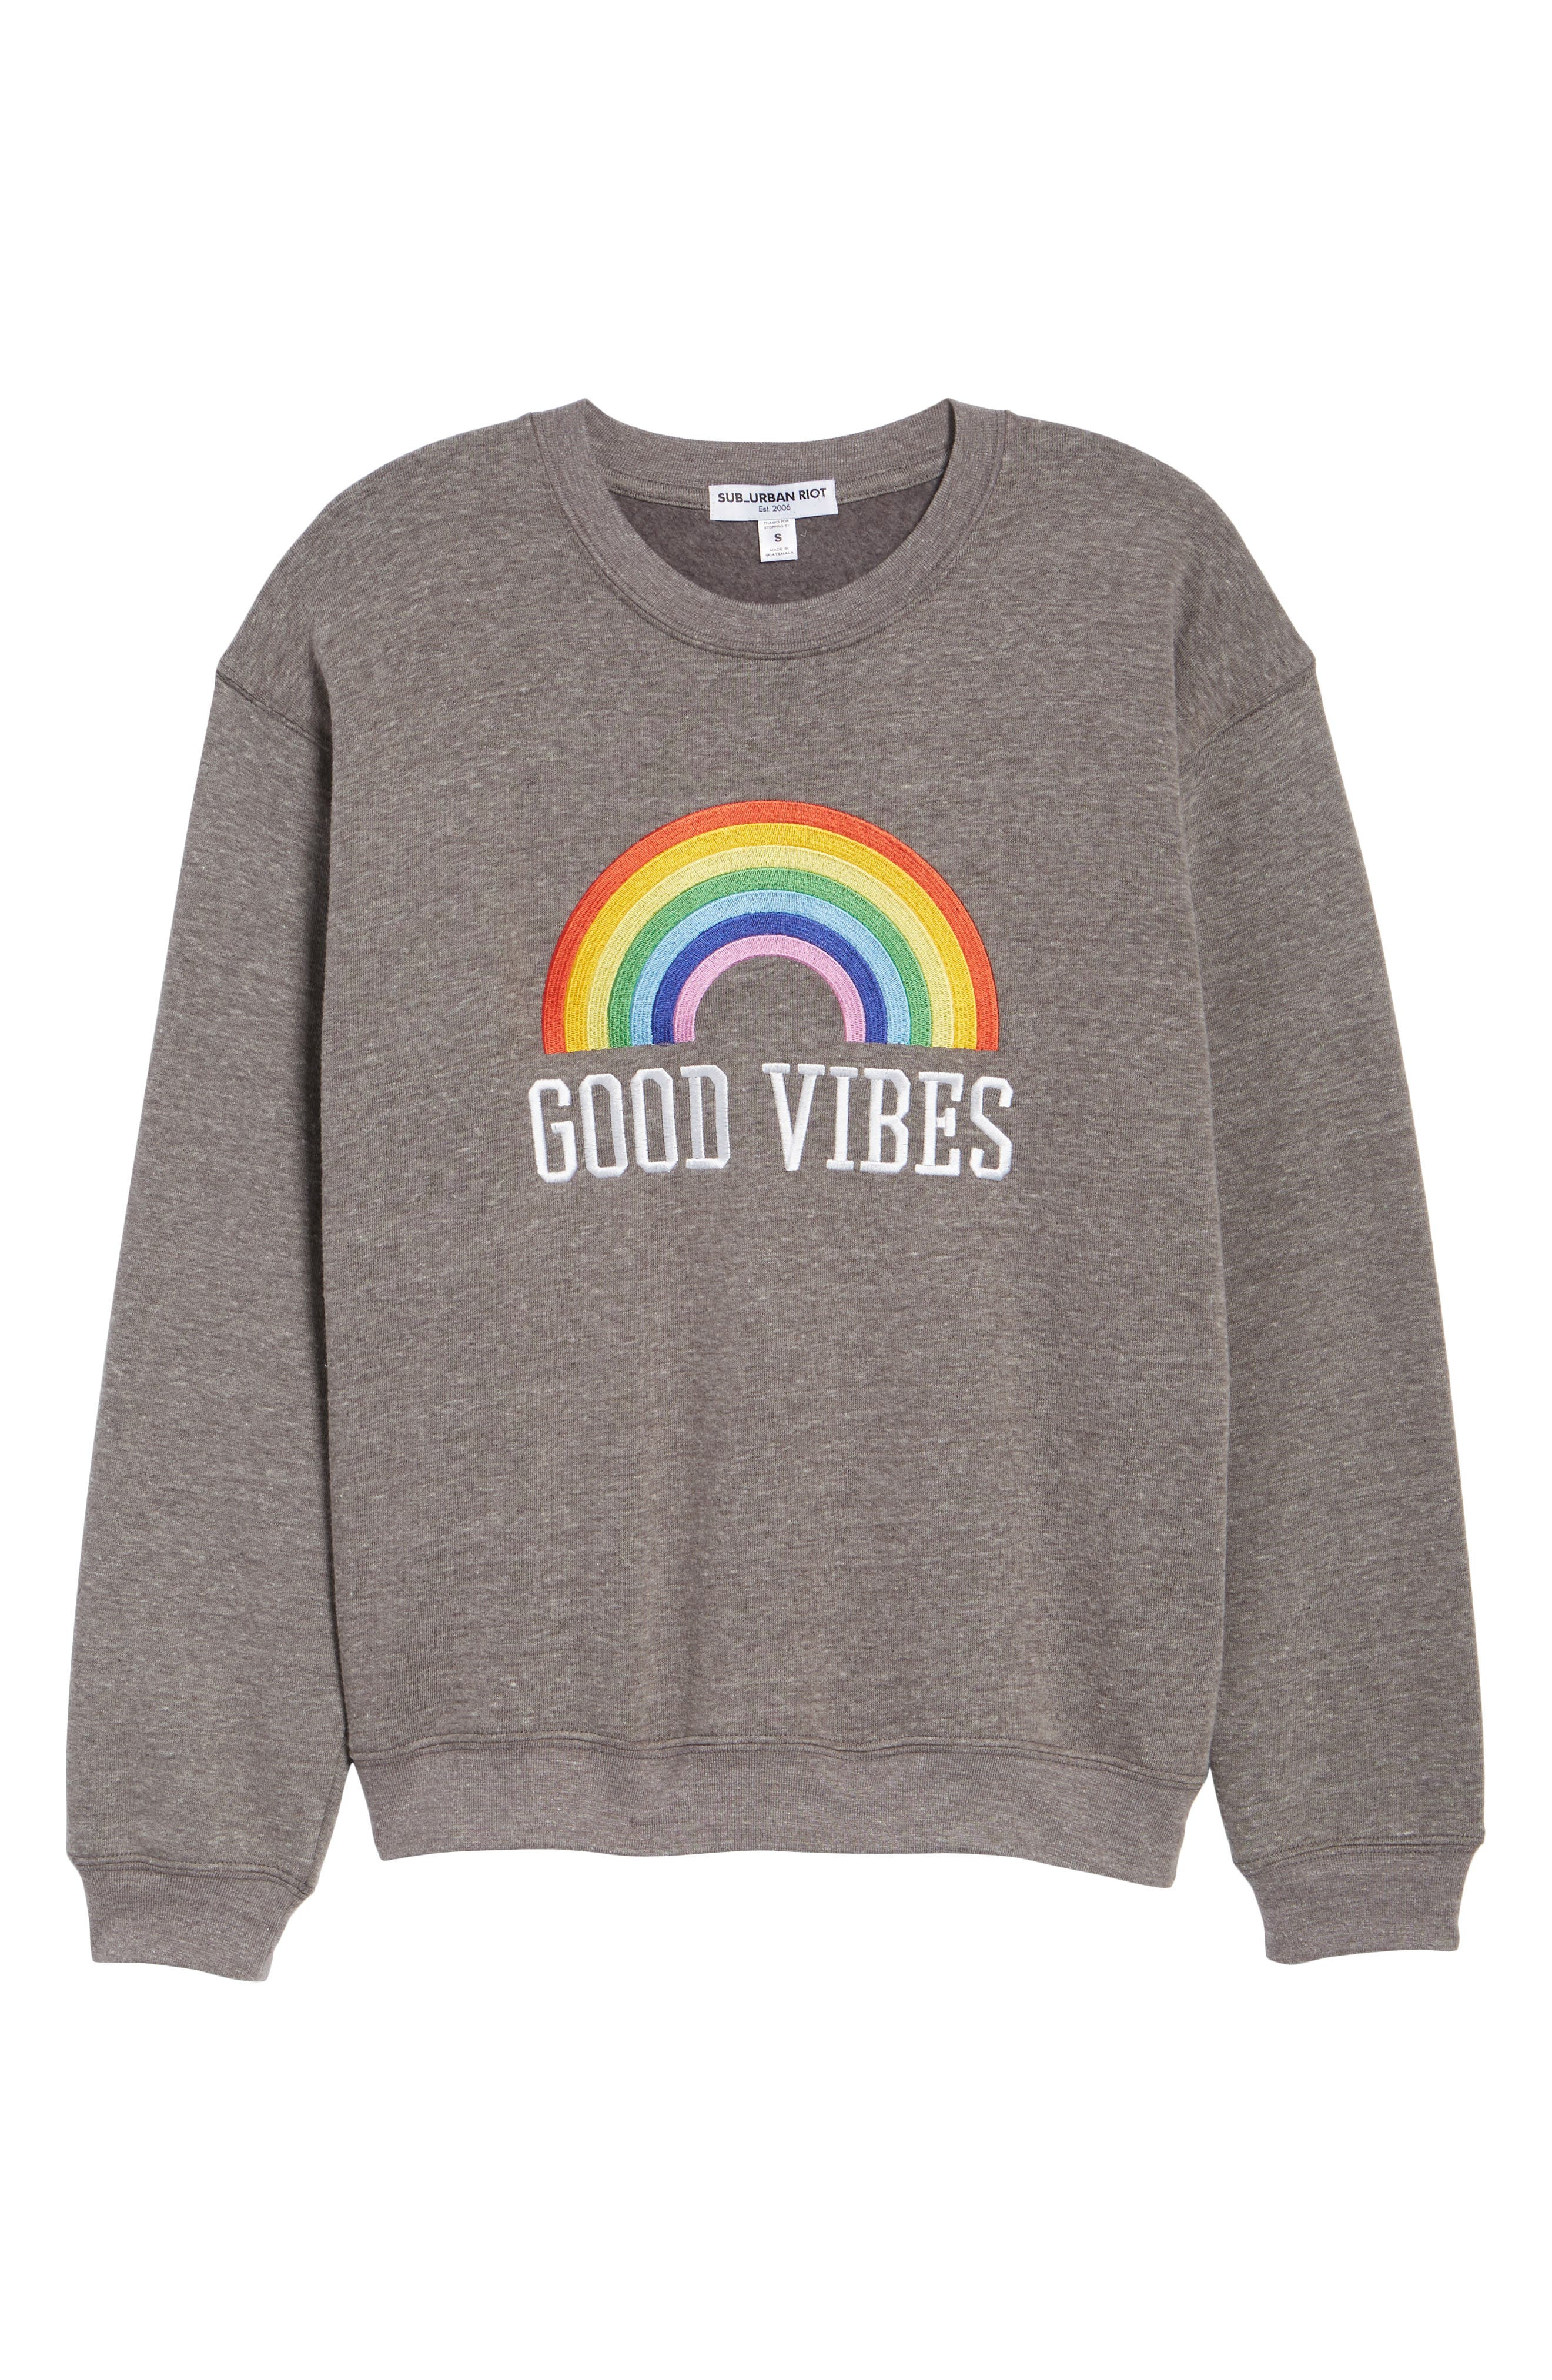 Good Vibes Rainbow Sweatshirt,                             Alternate thumbnail 7, color,                             HEATHER GREY